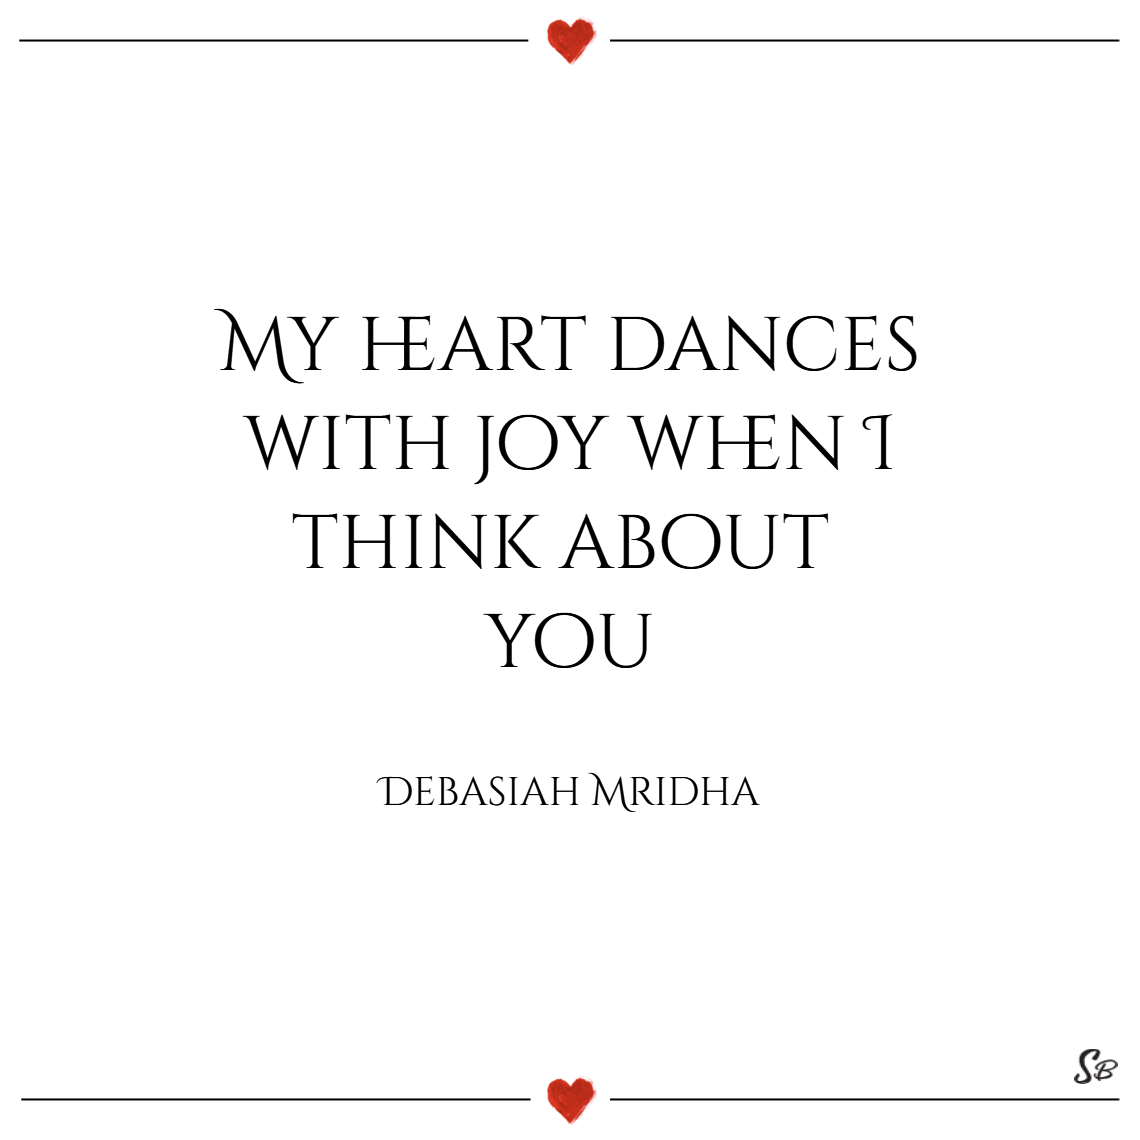 My heart dances with joy when i think about you. – debasish mridha thinking of you quotes